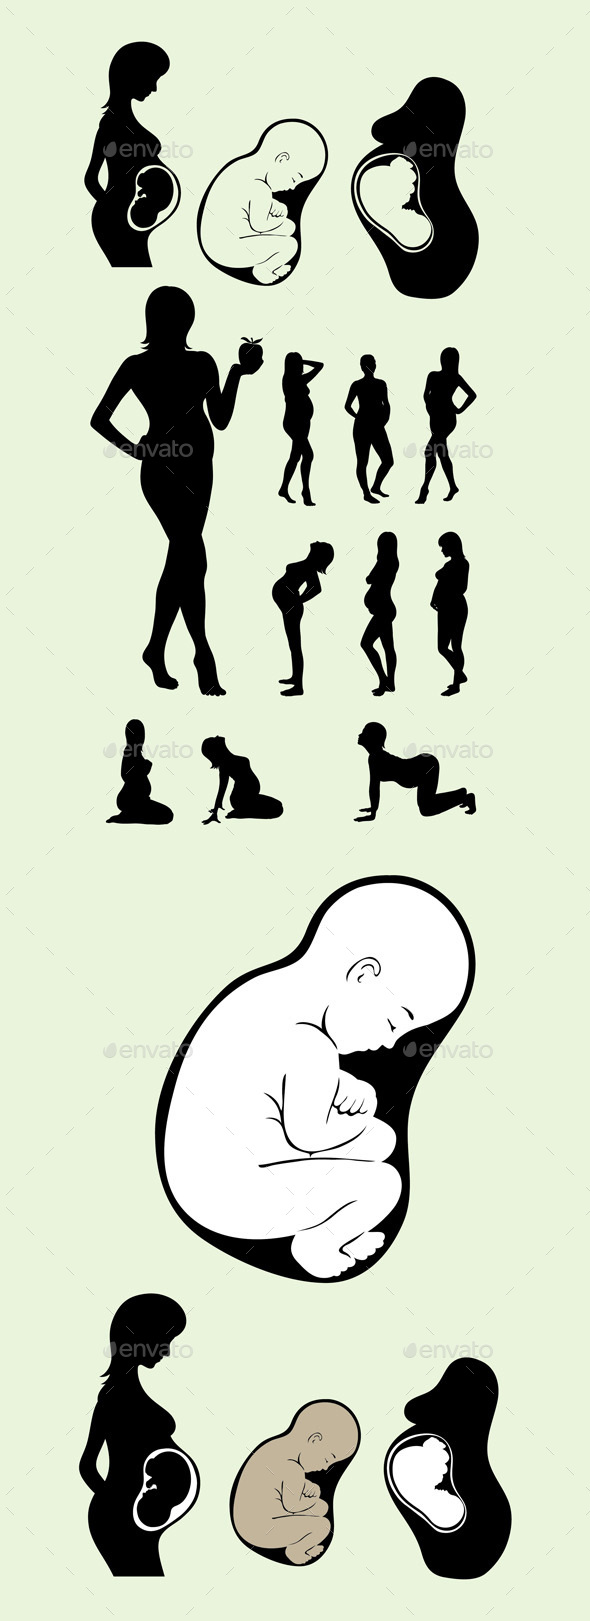 Silhouette of Pregnant Woman with Baby Inside - People Characters